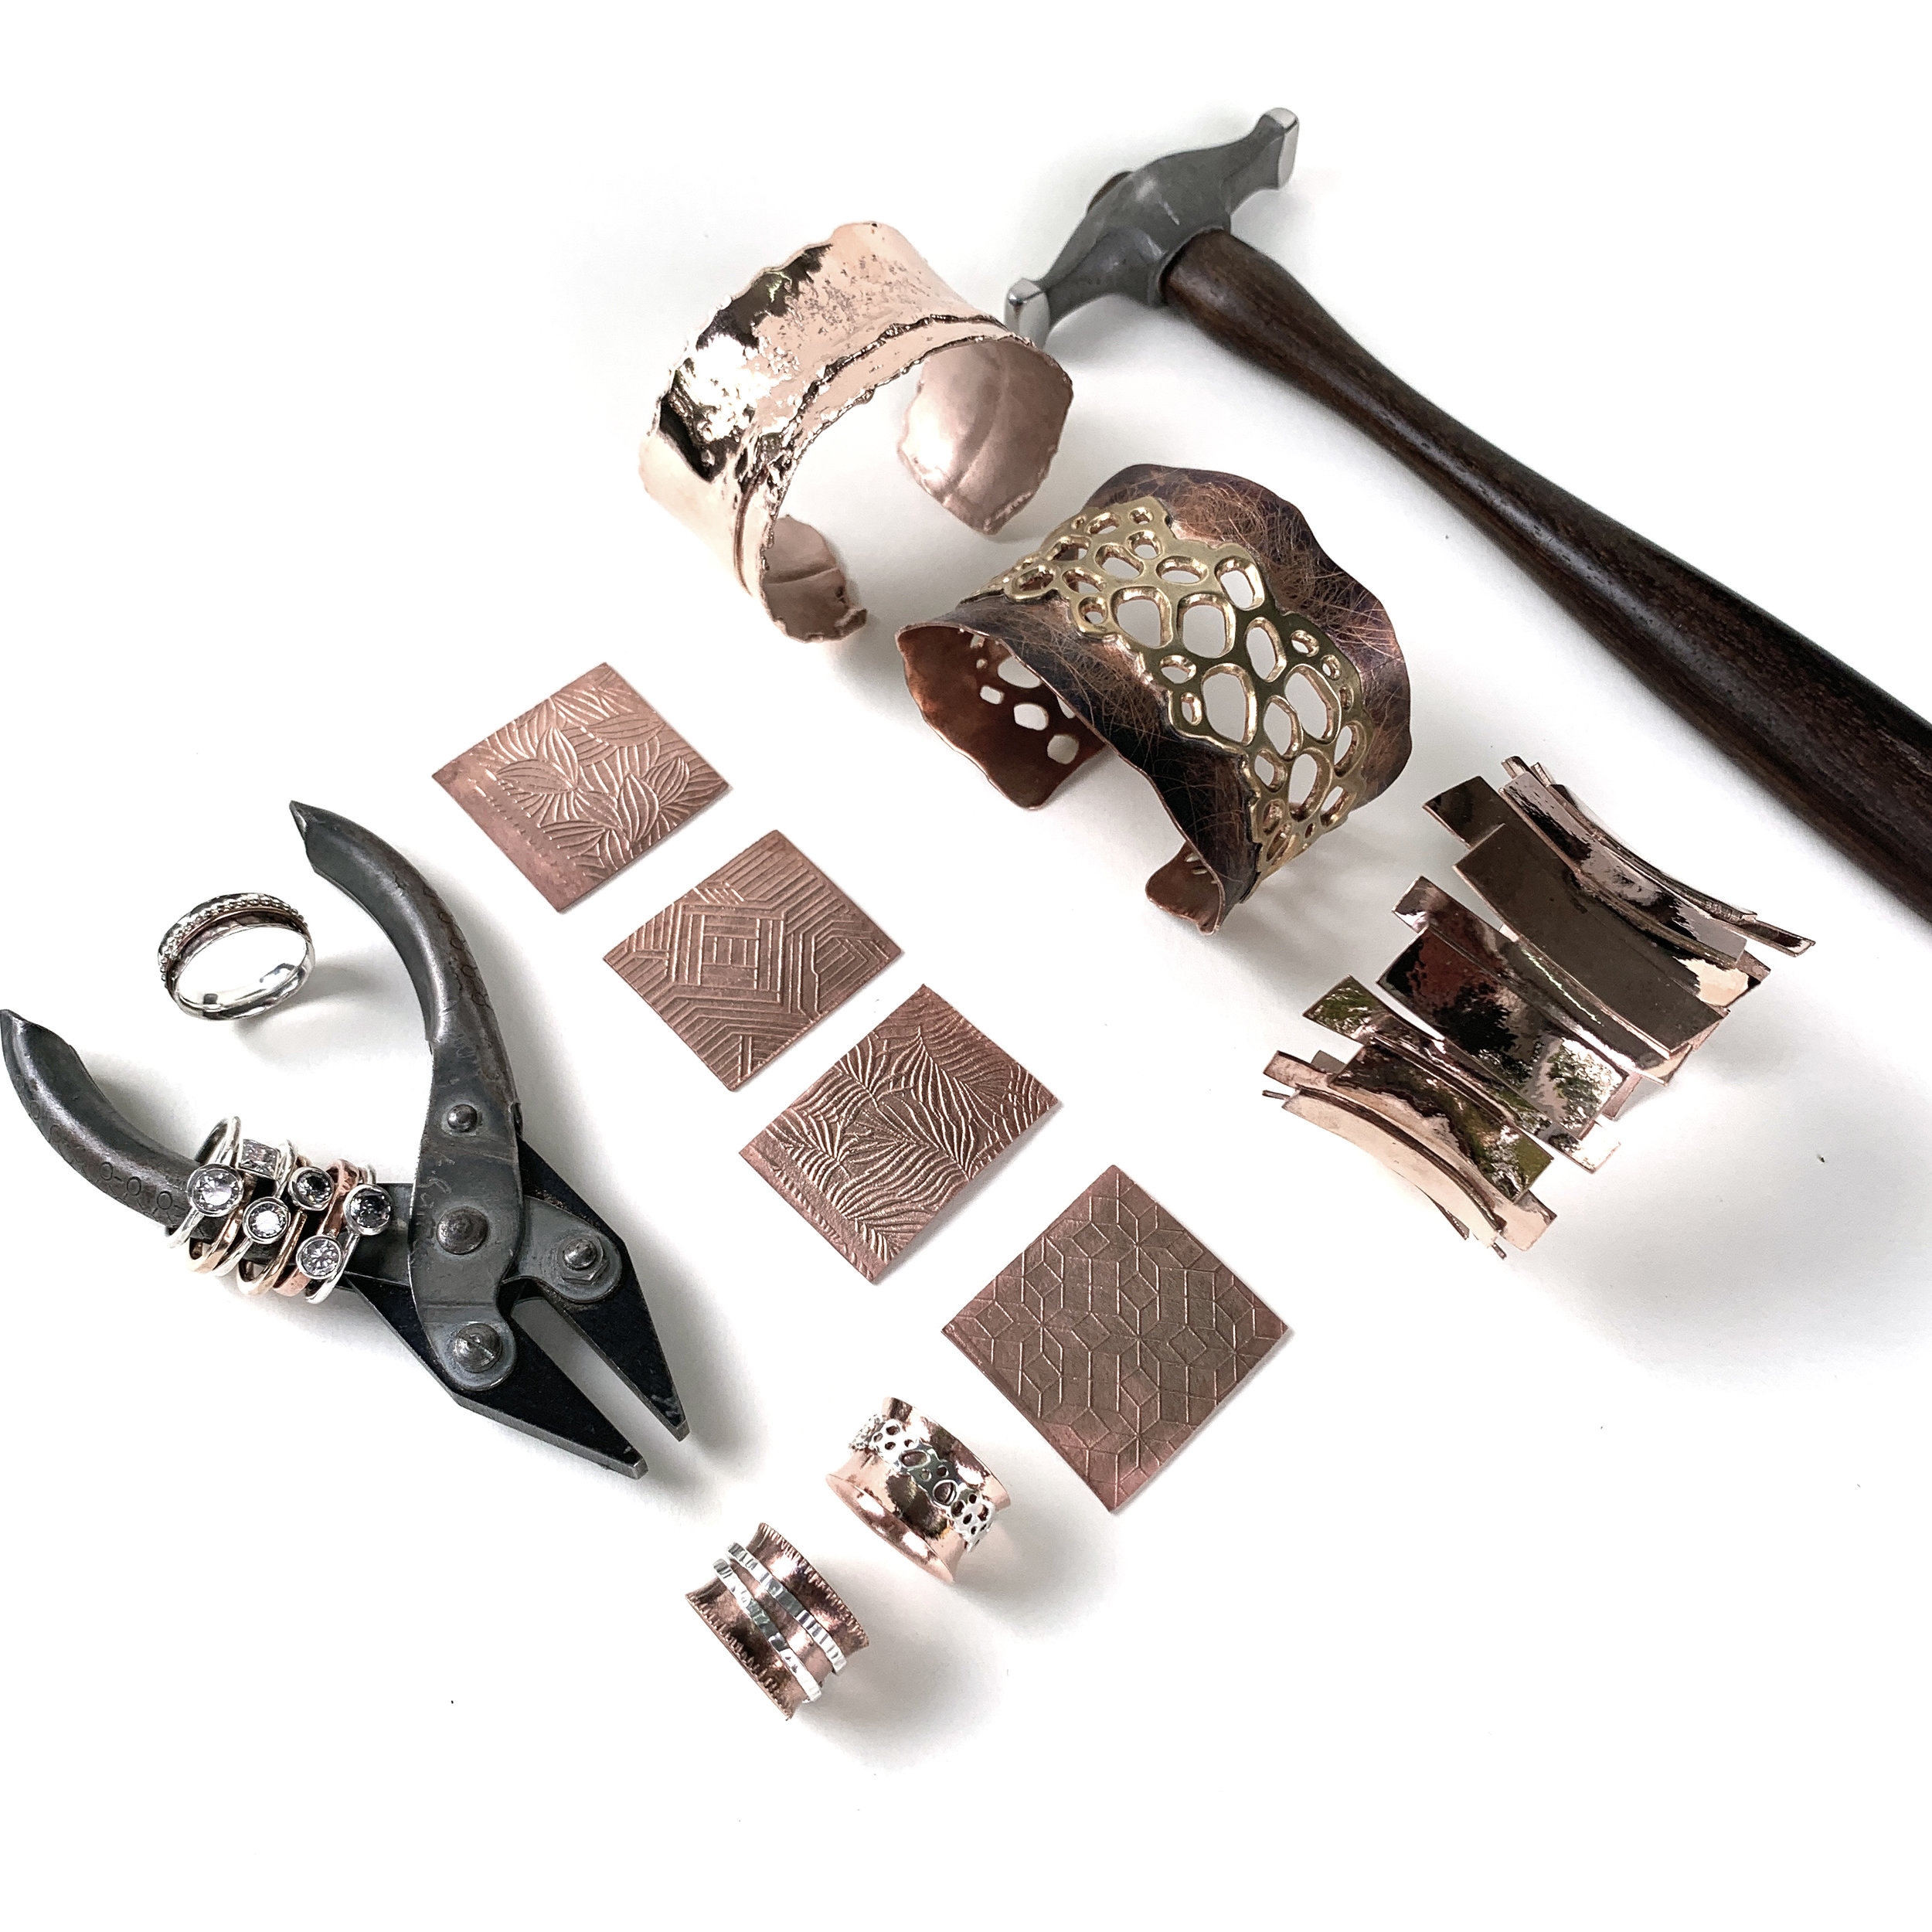 Jewellery Making Level 2 - Forging, texturizing, advanced soldering, fabrication, bezel setting - for jewellers who are already confident with the basics